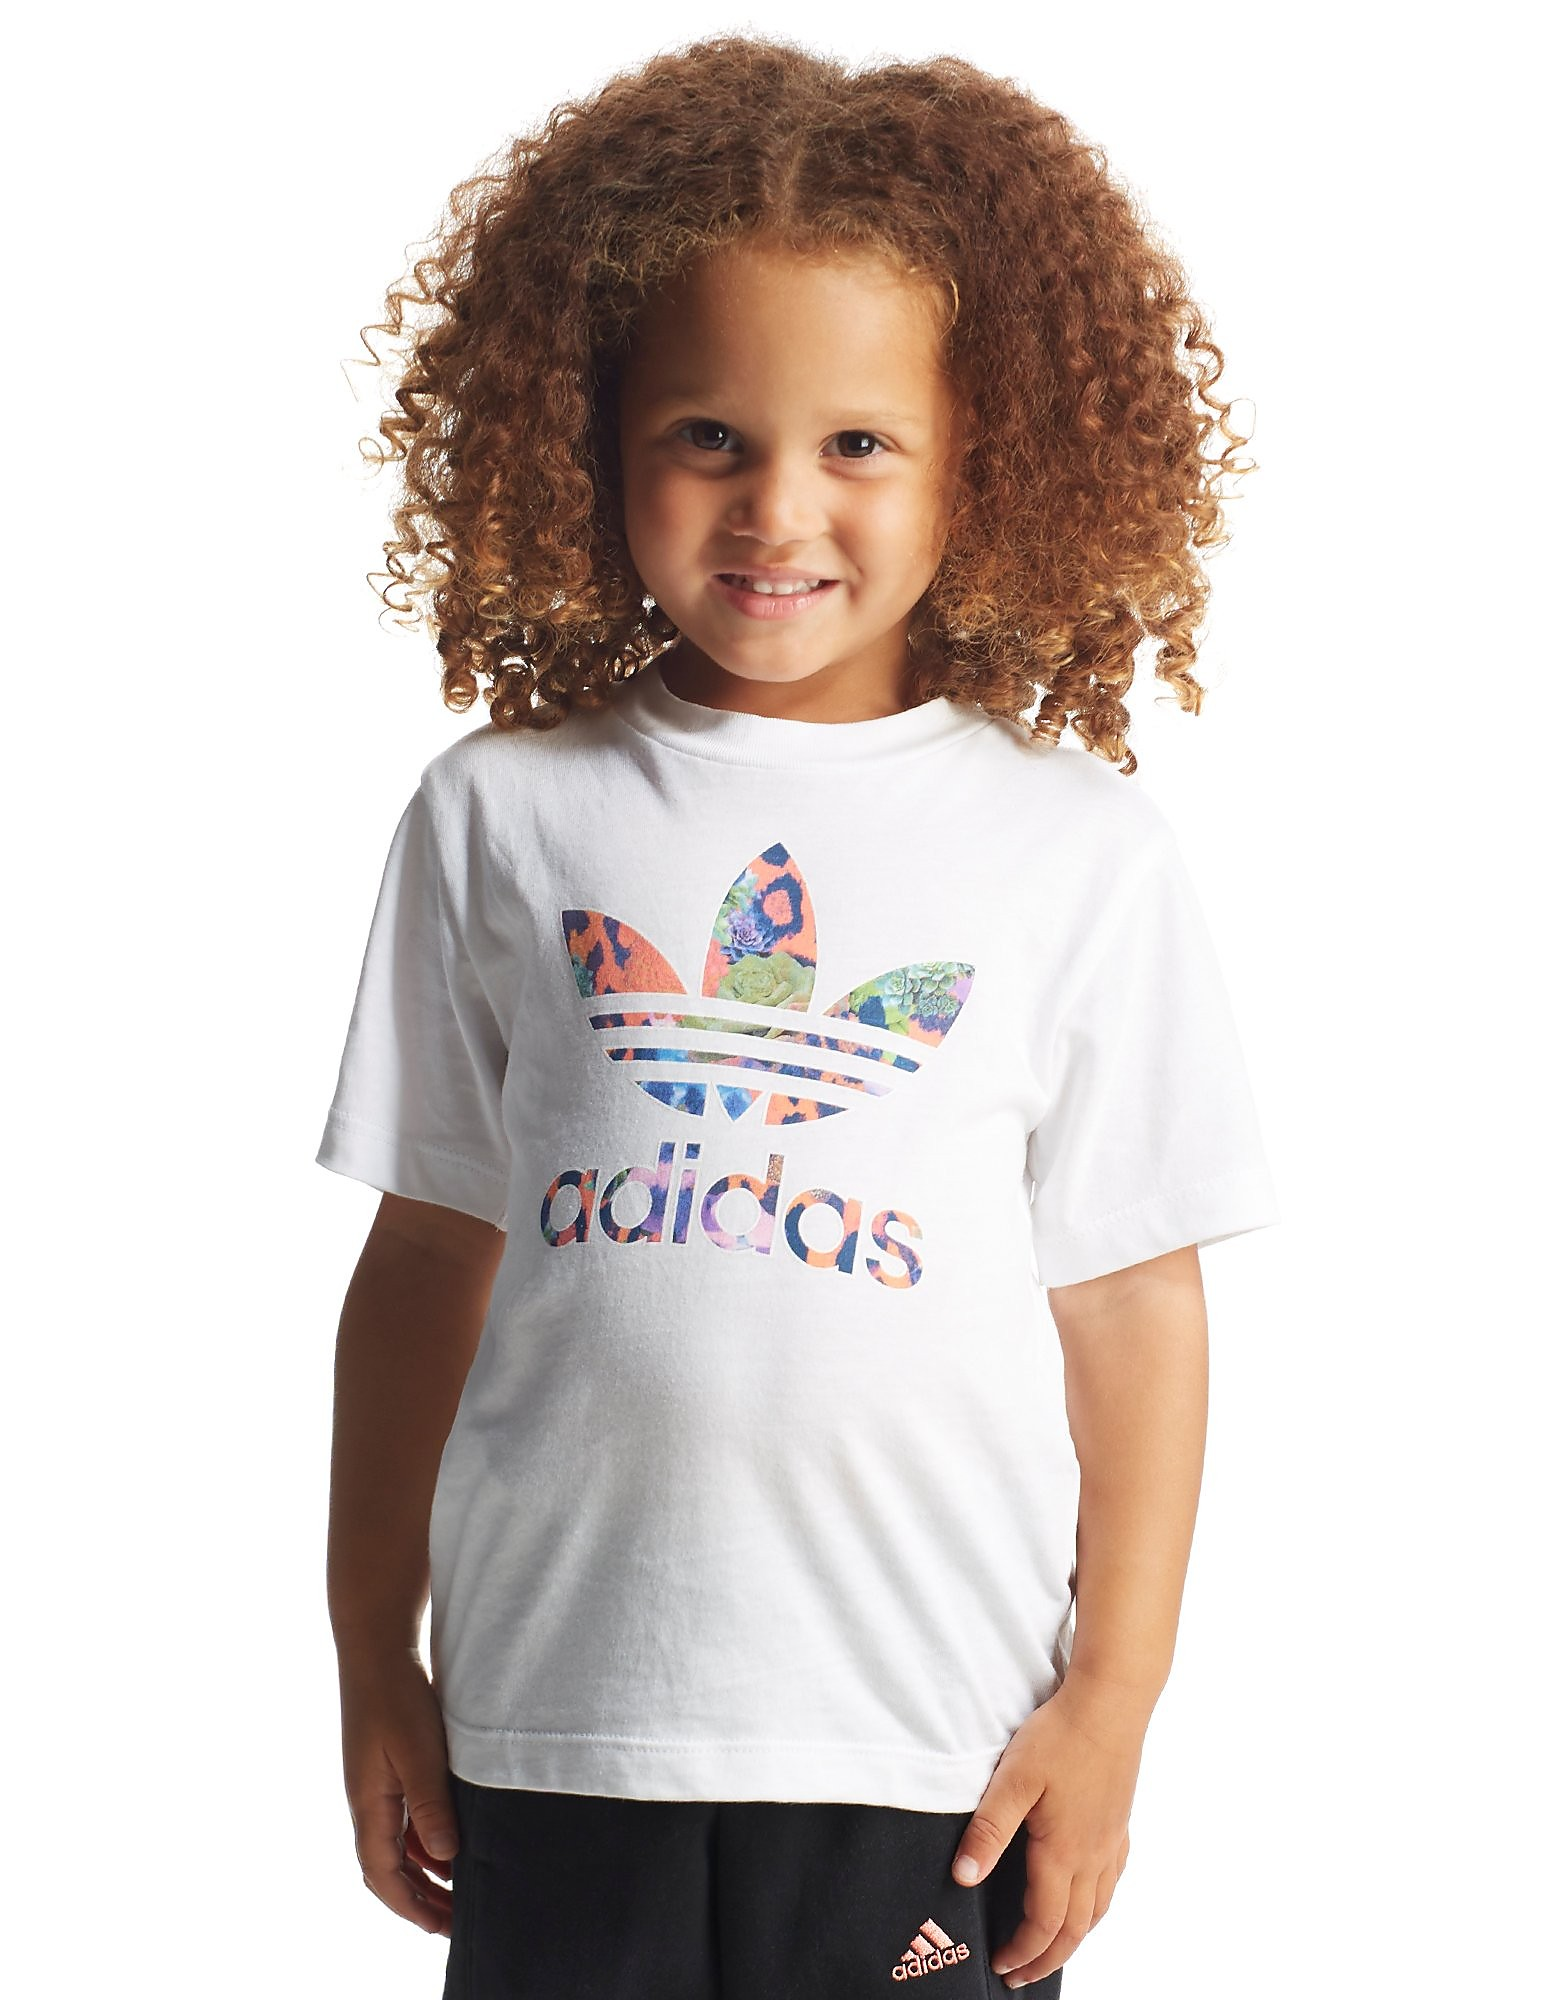 adidas Originals Girls' Farm t-shirt baby